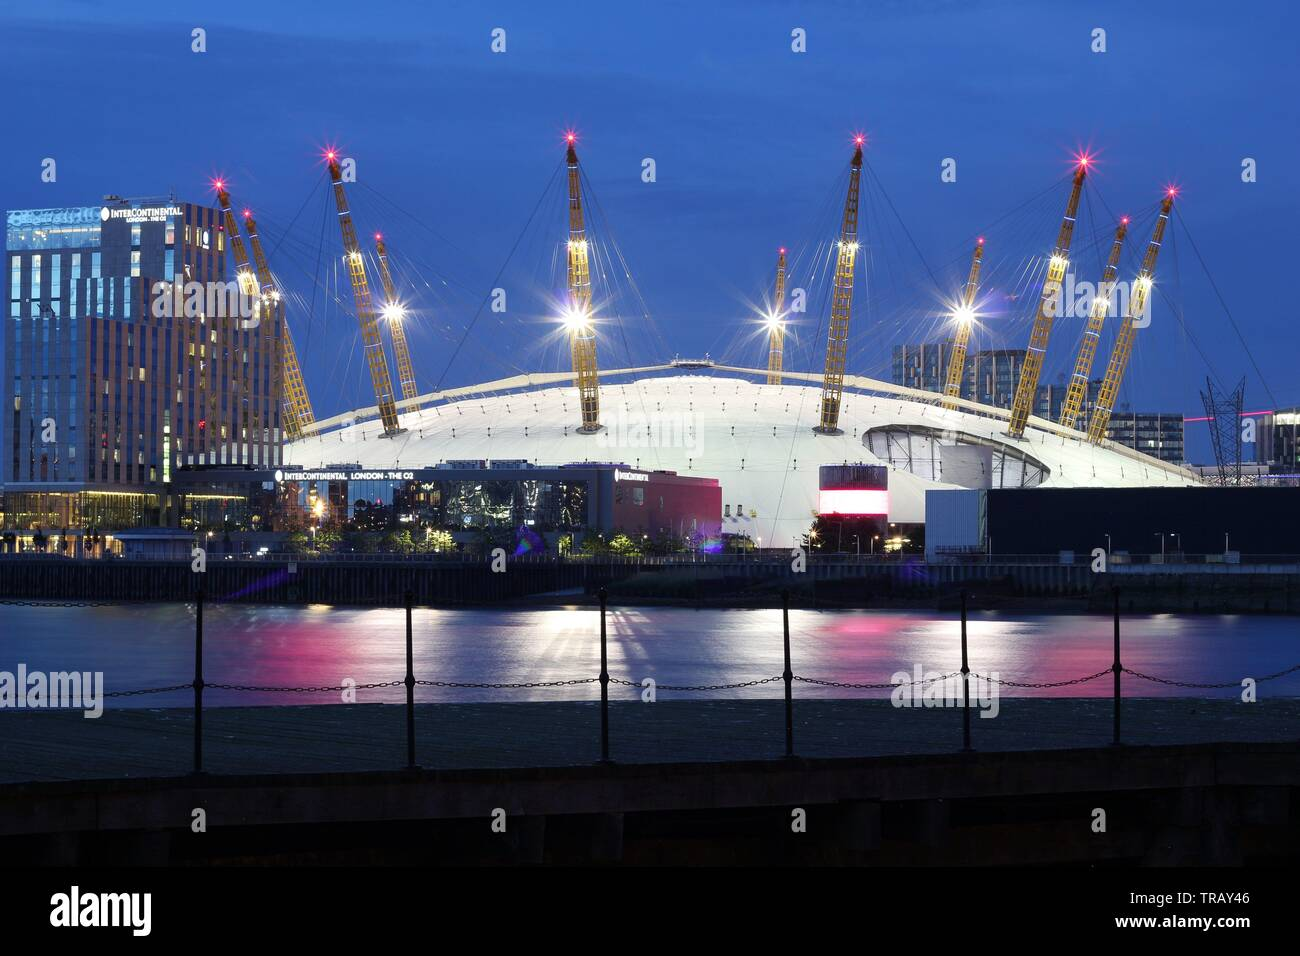 Millennium dome seen from far at night, London, England - Stock Image